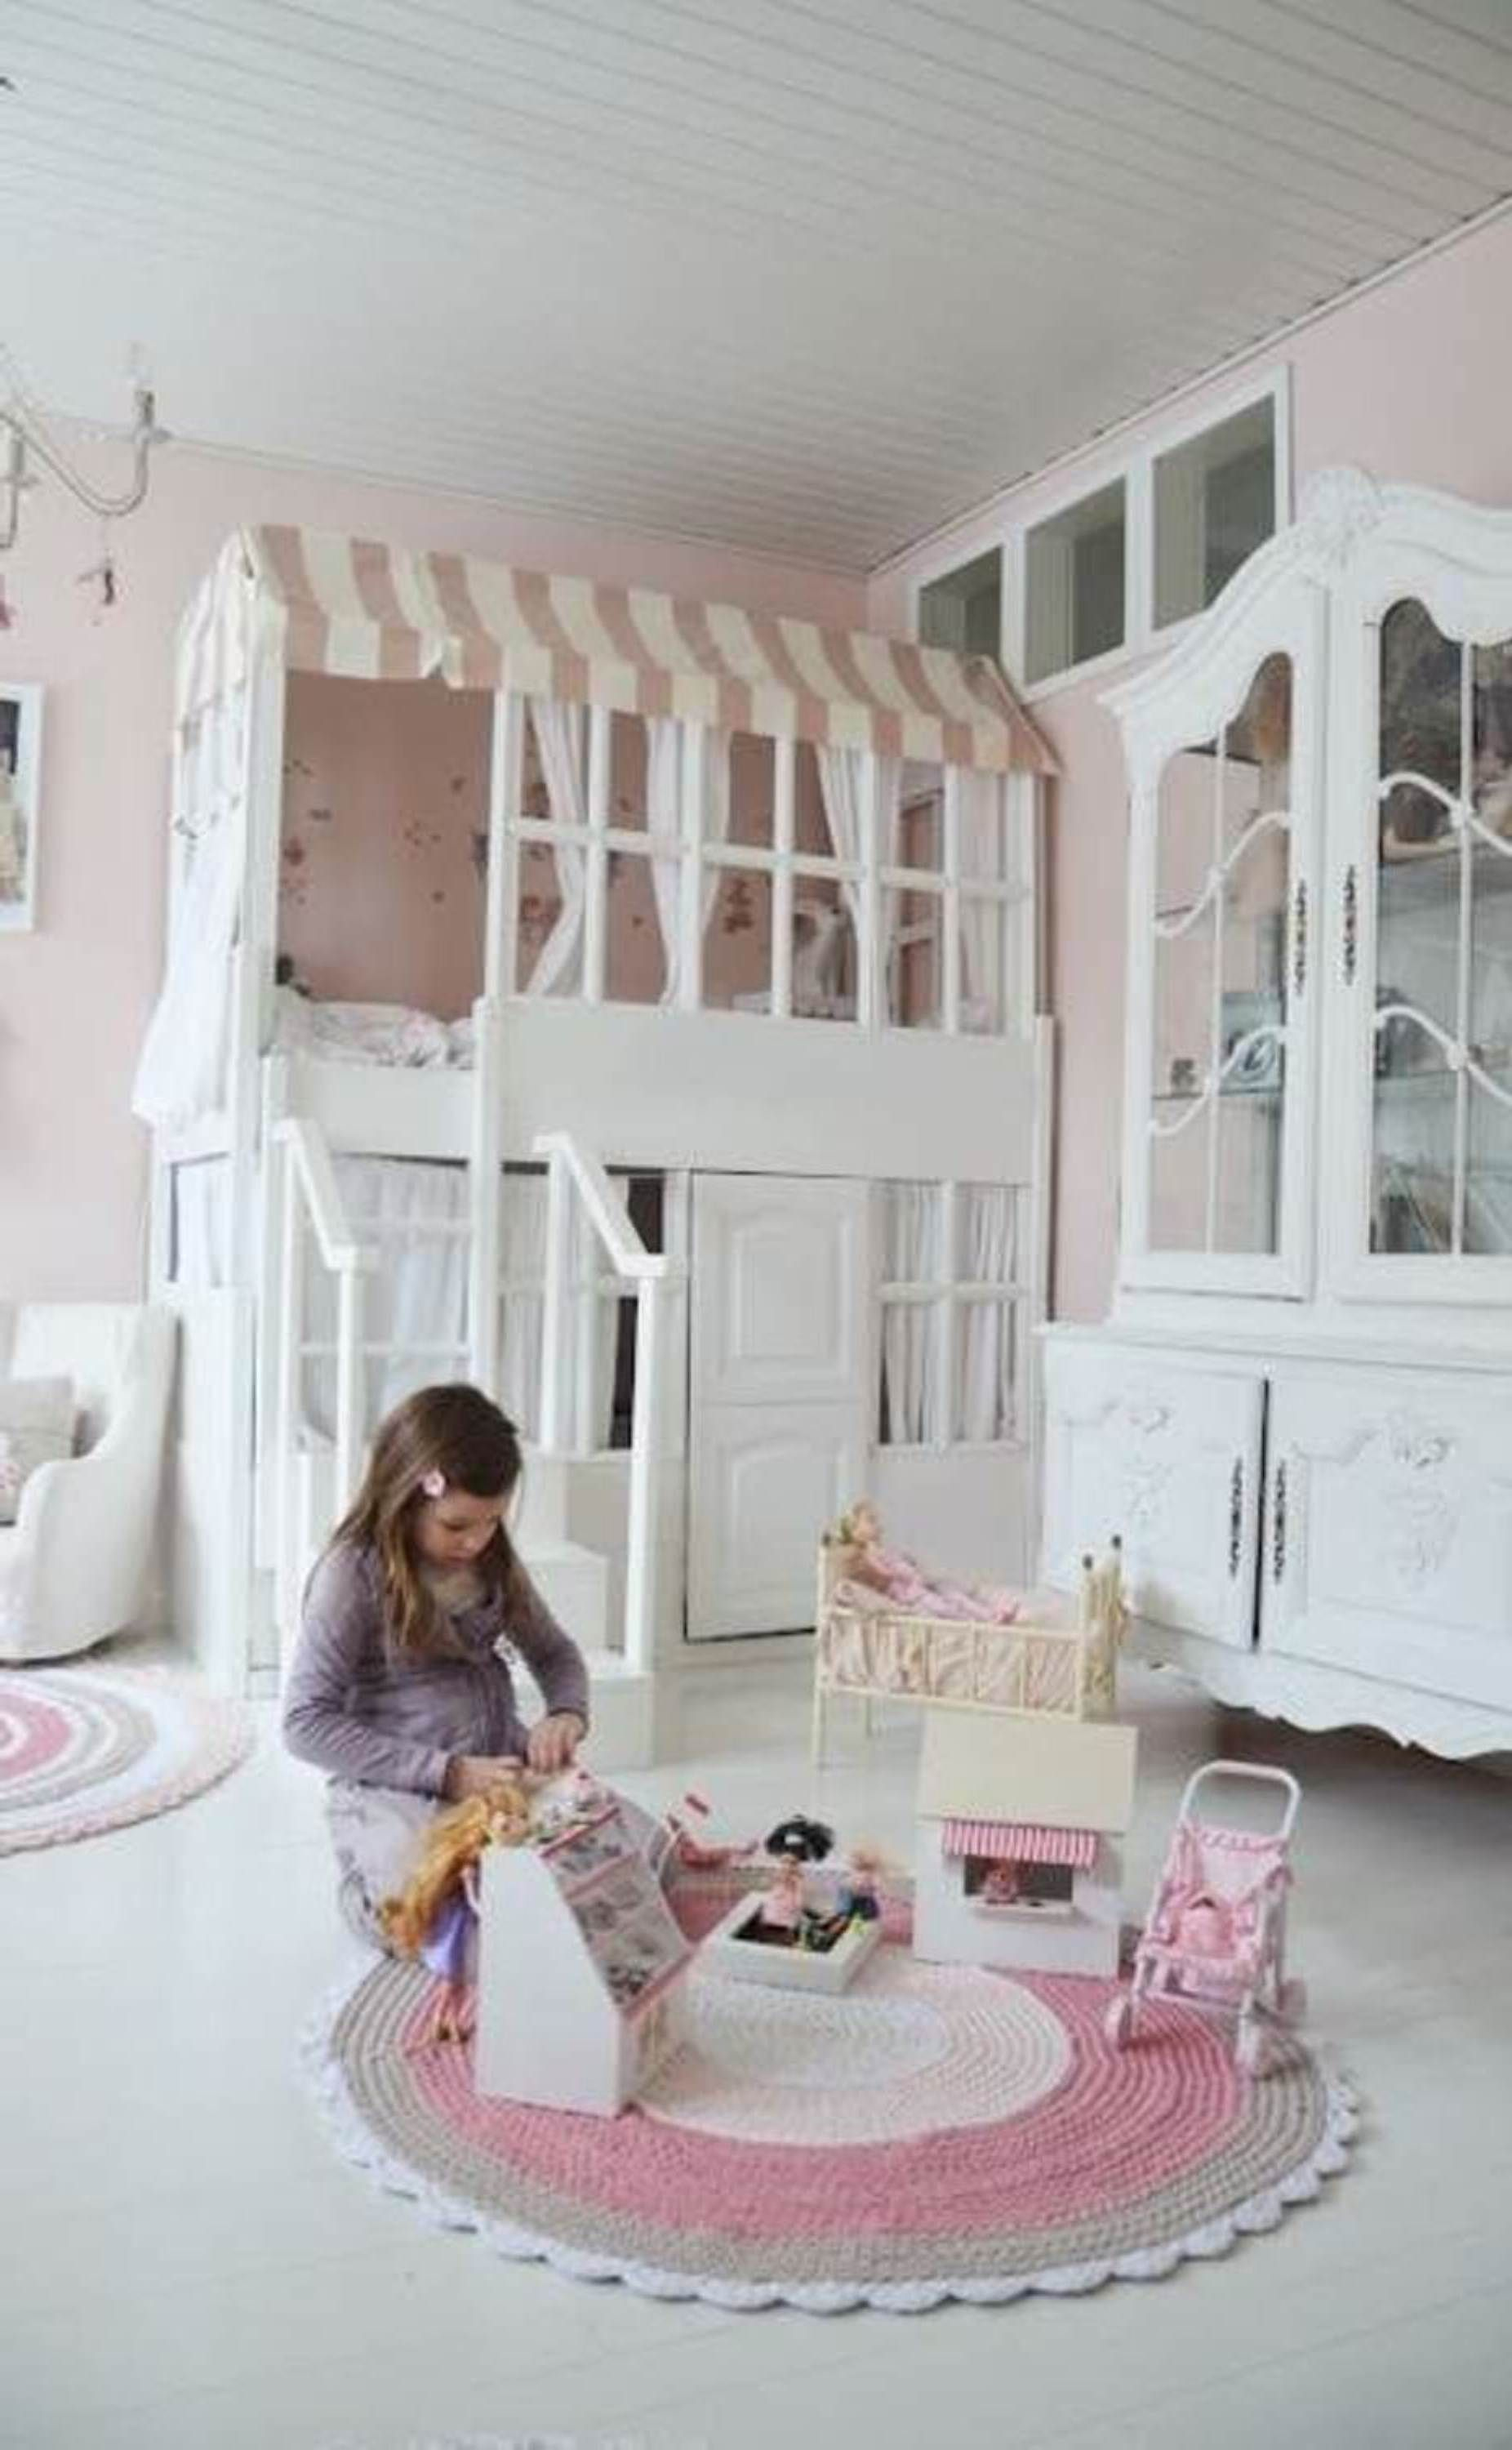 Loft bed ideas for girls  Awesome Little Girl Bedrooms  Decorating Ideas for Little Girl